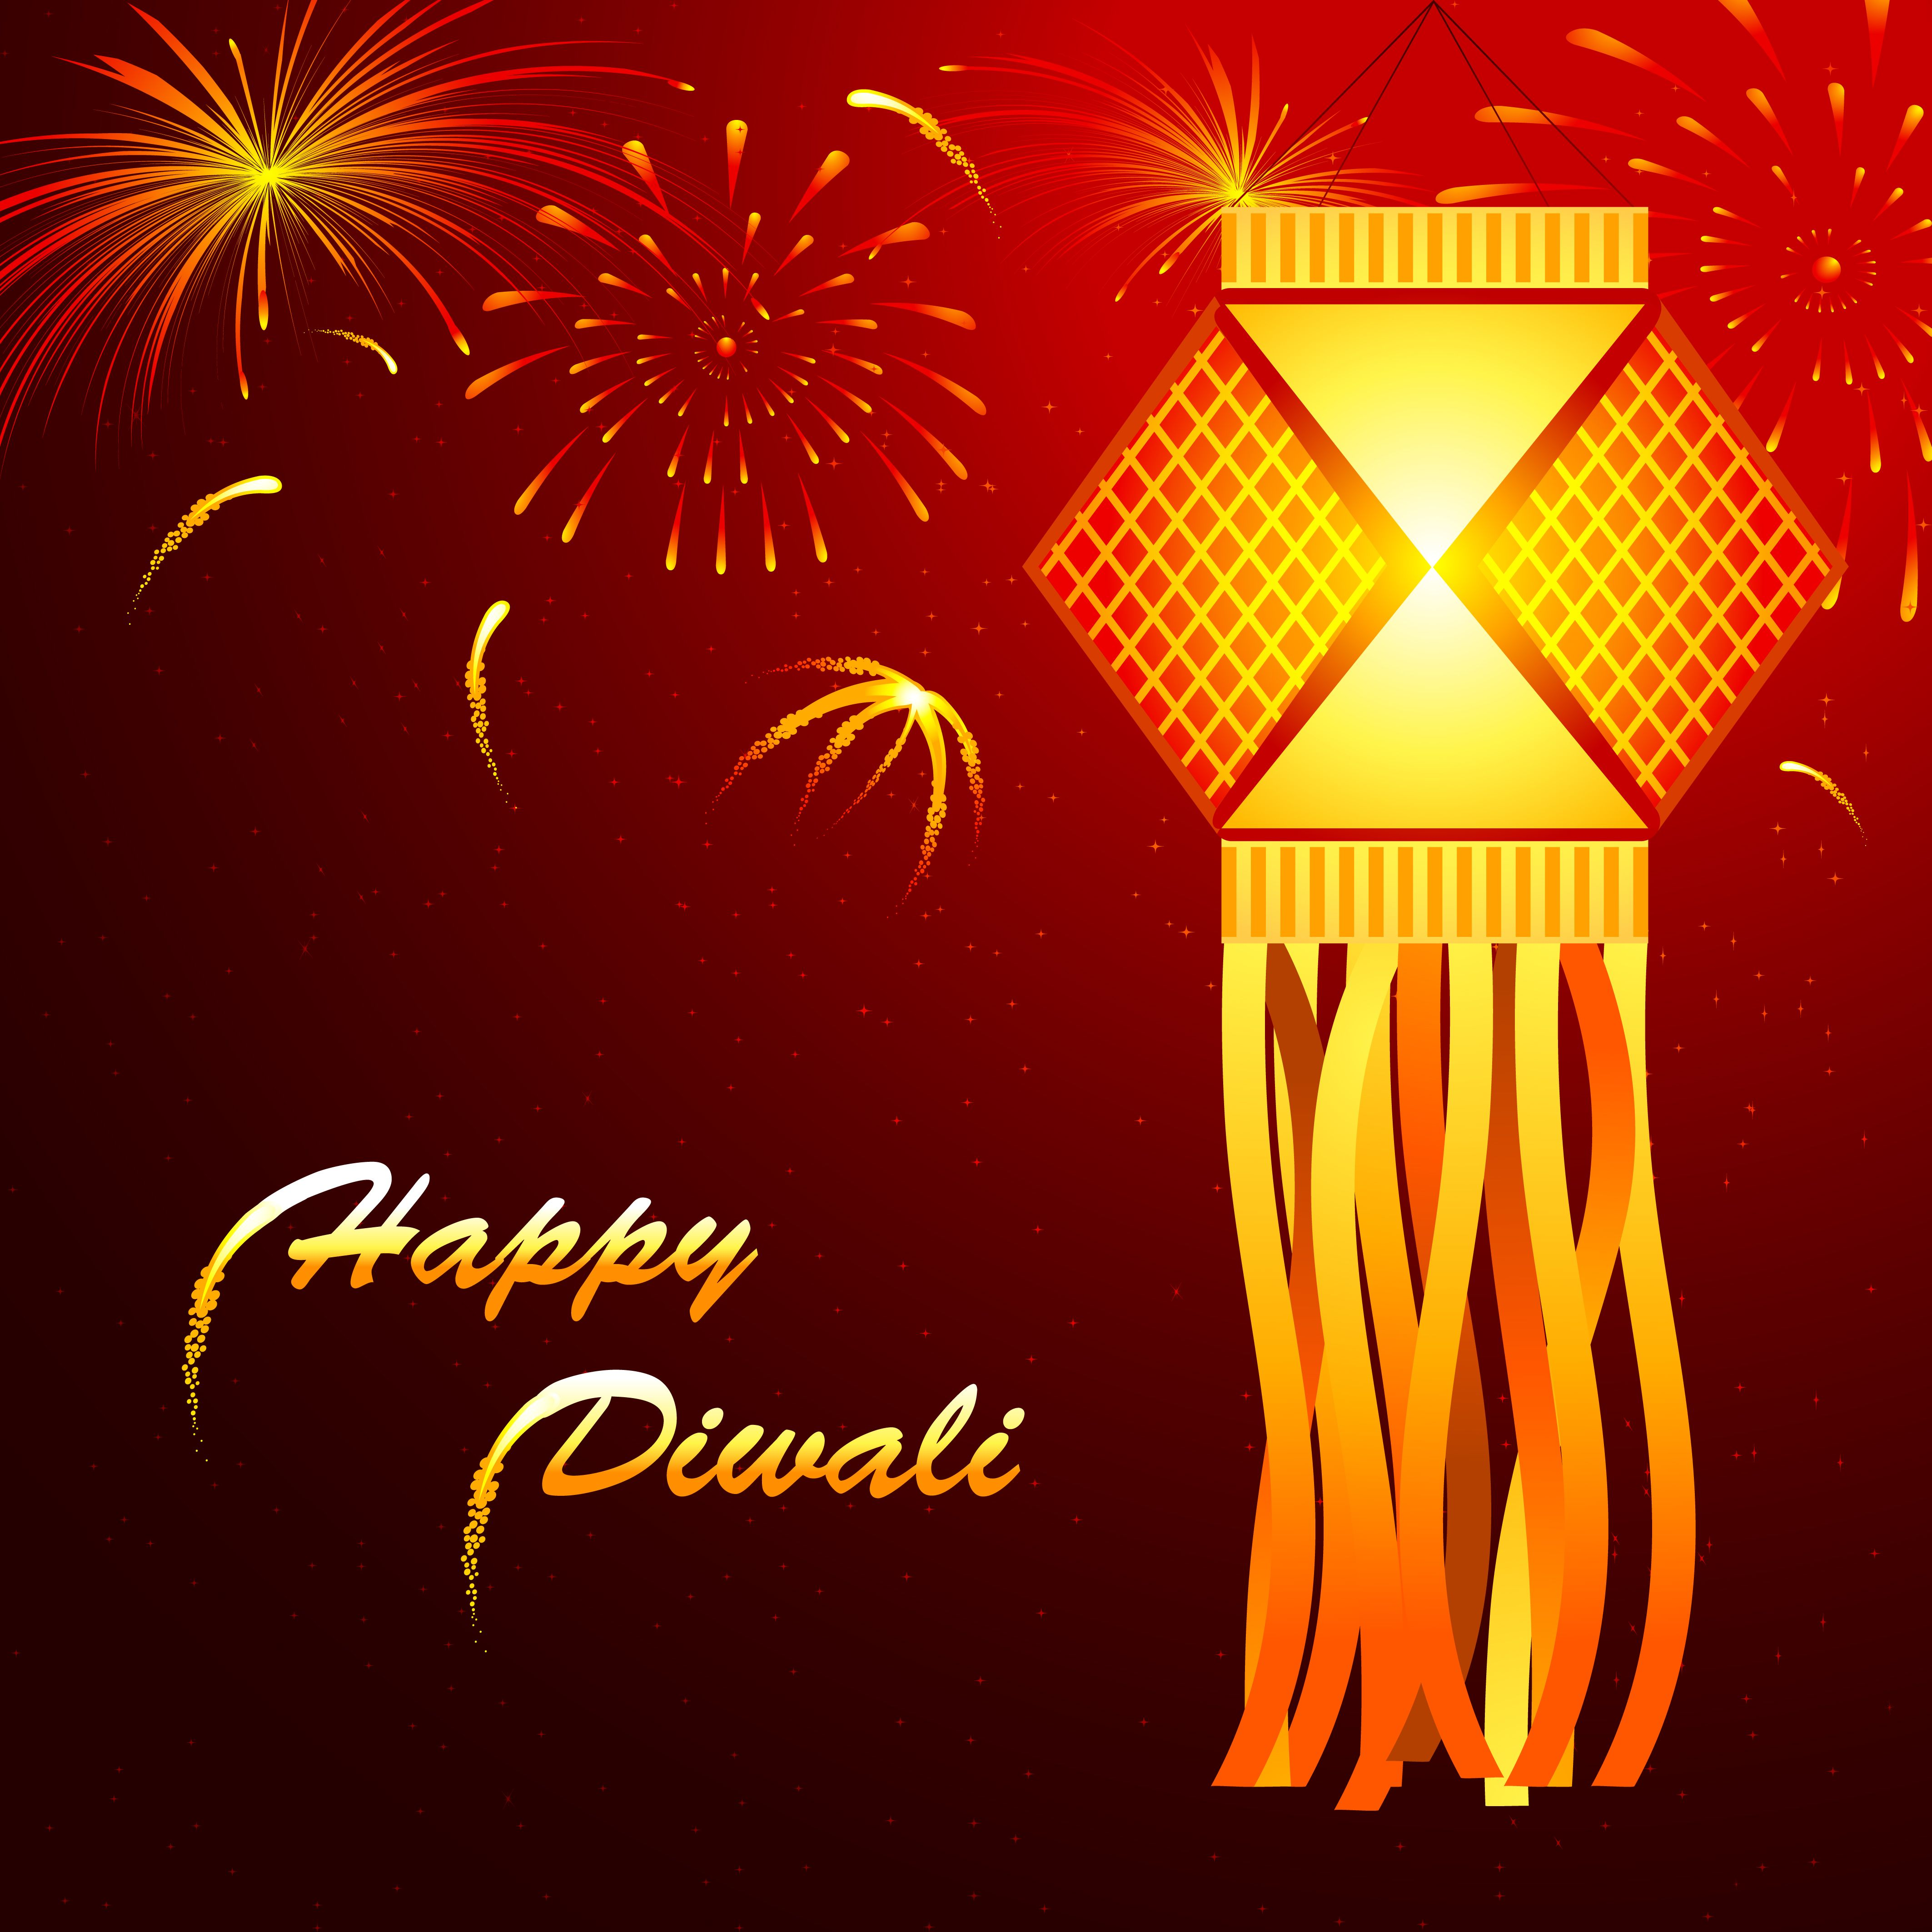 Here We Provide You Worlds Best Collection Of The Happy Diwali Wallpaper Free Download For